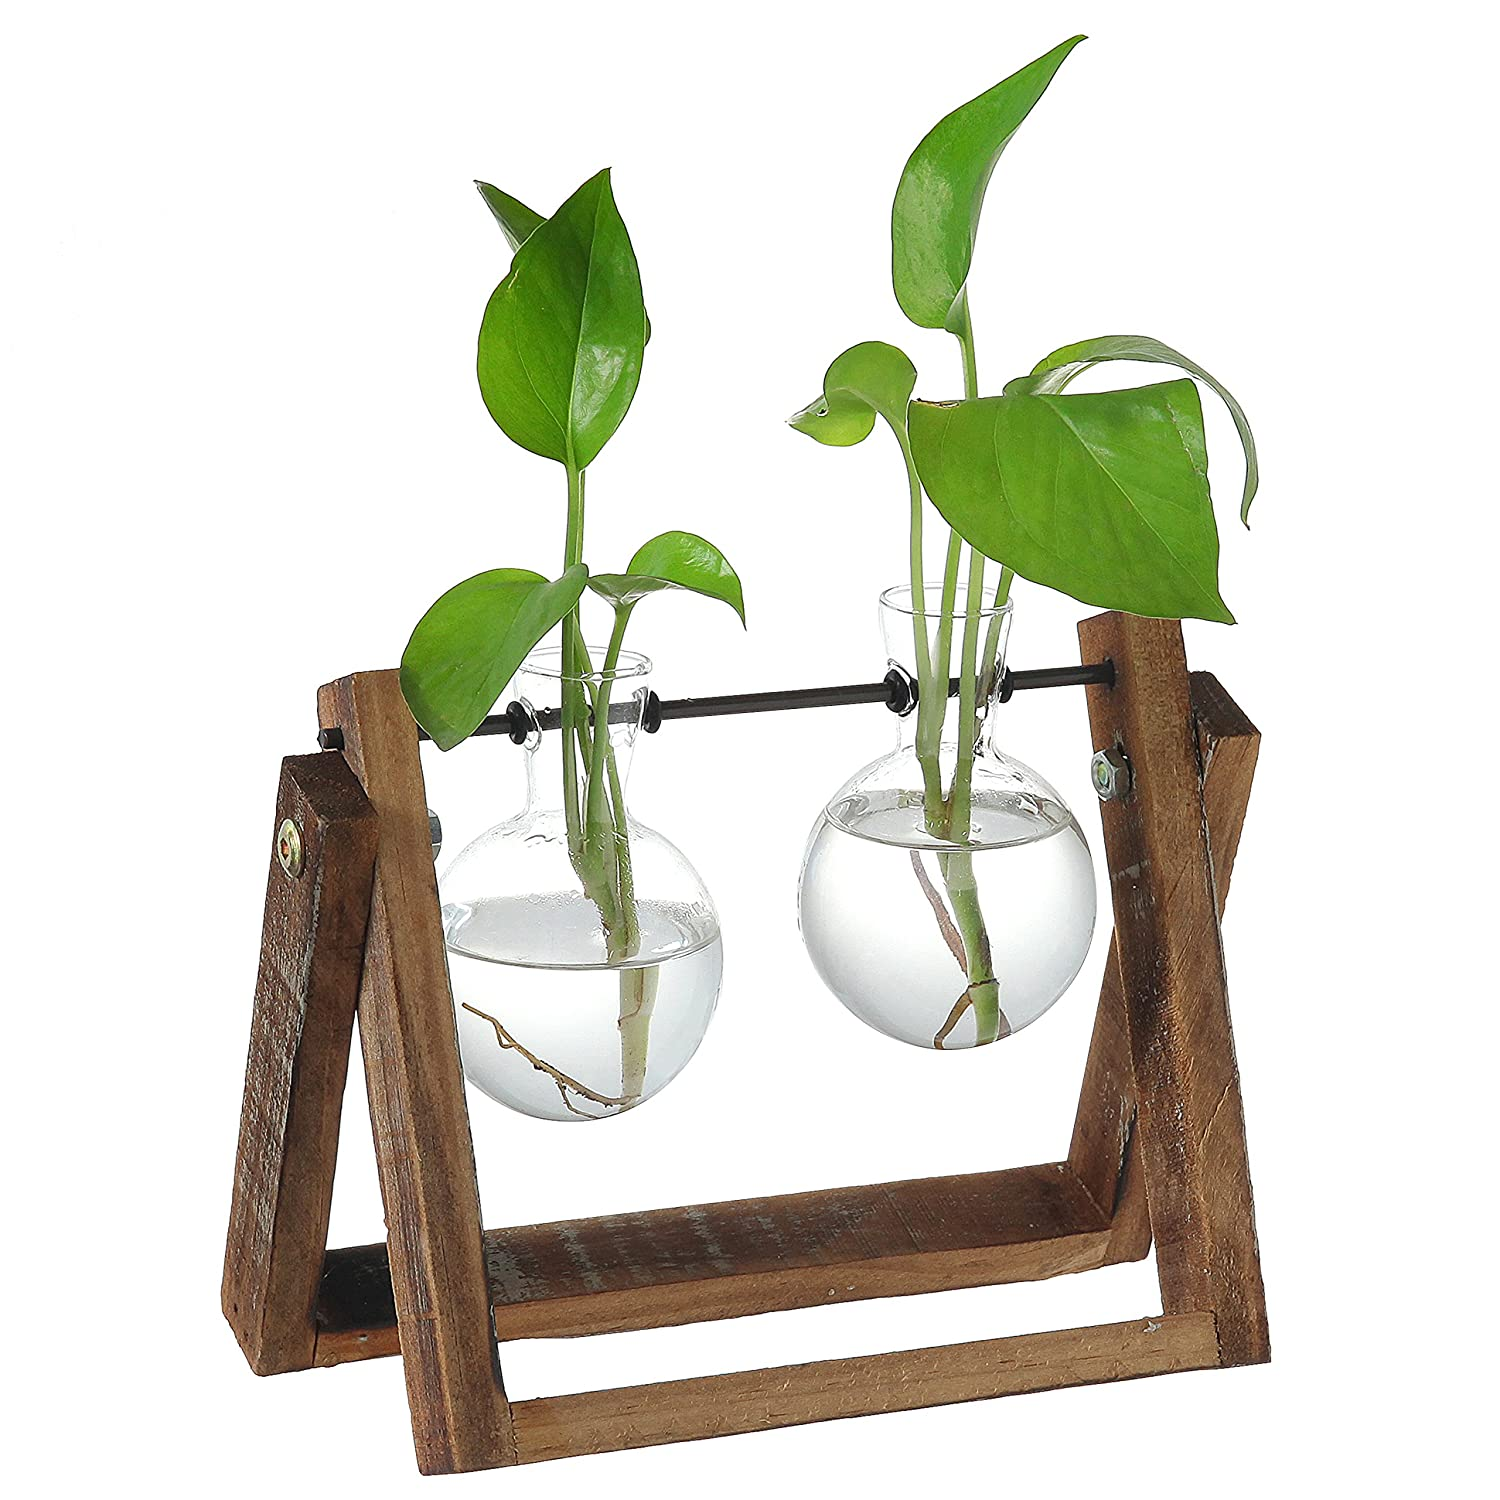 Amazon decorative clear glass planter bulb vases with rustic amazon decorative clear glass planter bulb vases with rustic wood metal swivel holder stand garden outdoor floridaeventfo Images